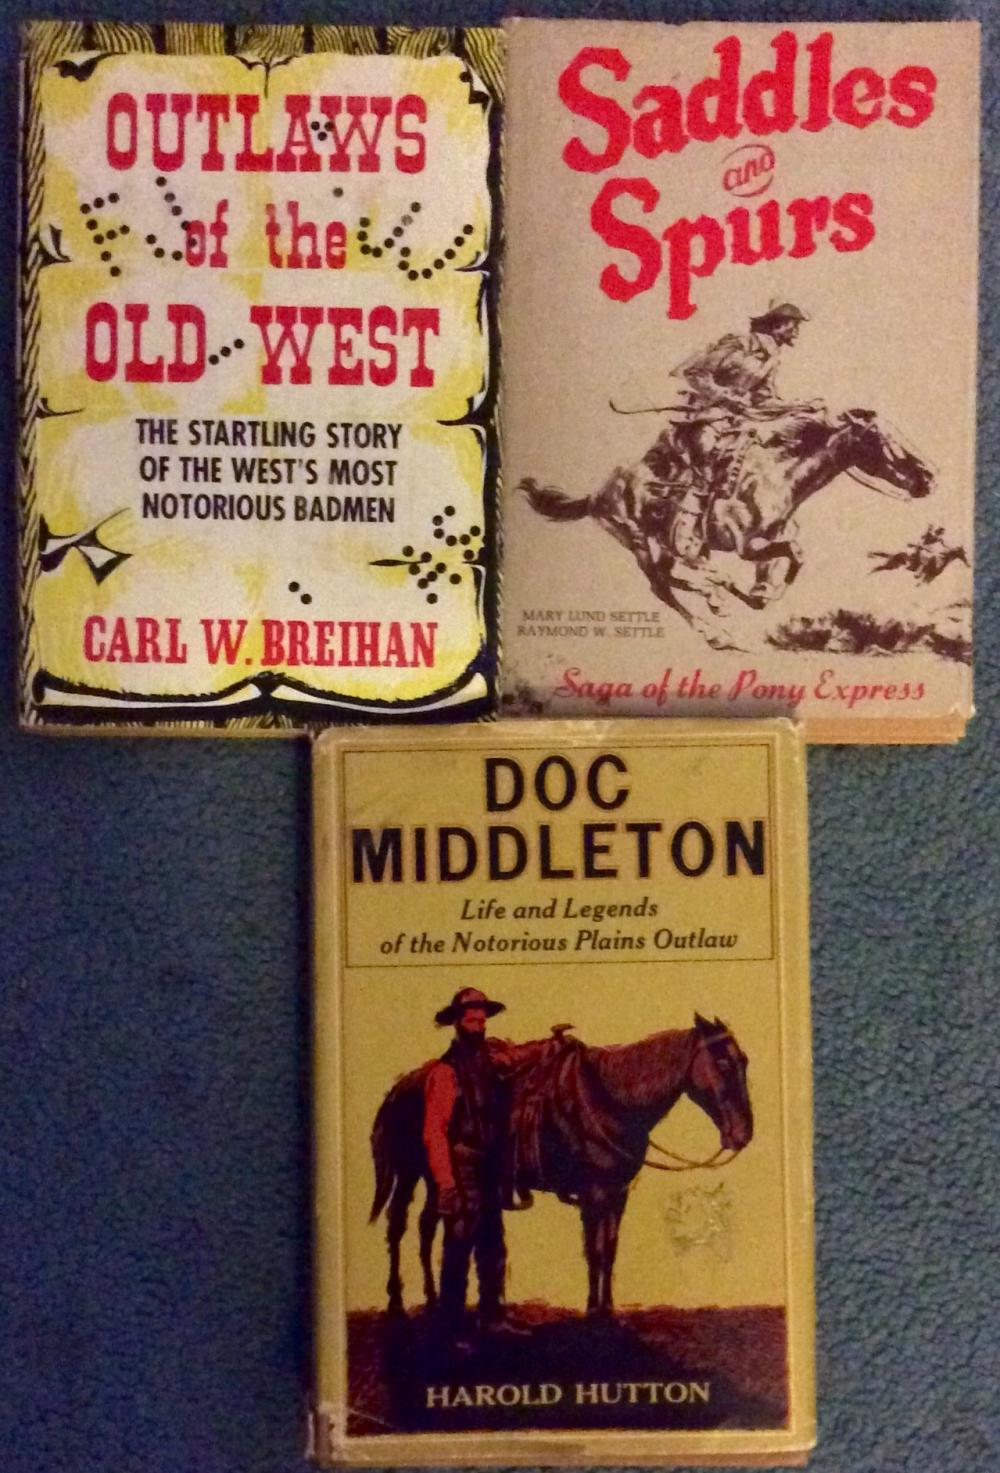 """Saddles & Spurs"" by Mary & Raymond Settle ""Doc Middleton"" by Harold Hutton & ""Outlaws Of The Old West' by Carl Breihan VINTAGE Collectible (3) US Western History Hardcover Lot w/ DJs"